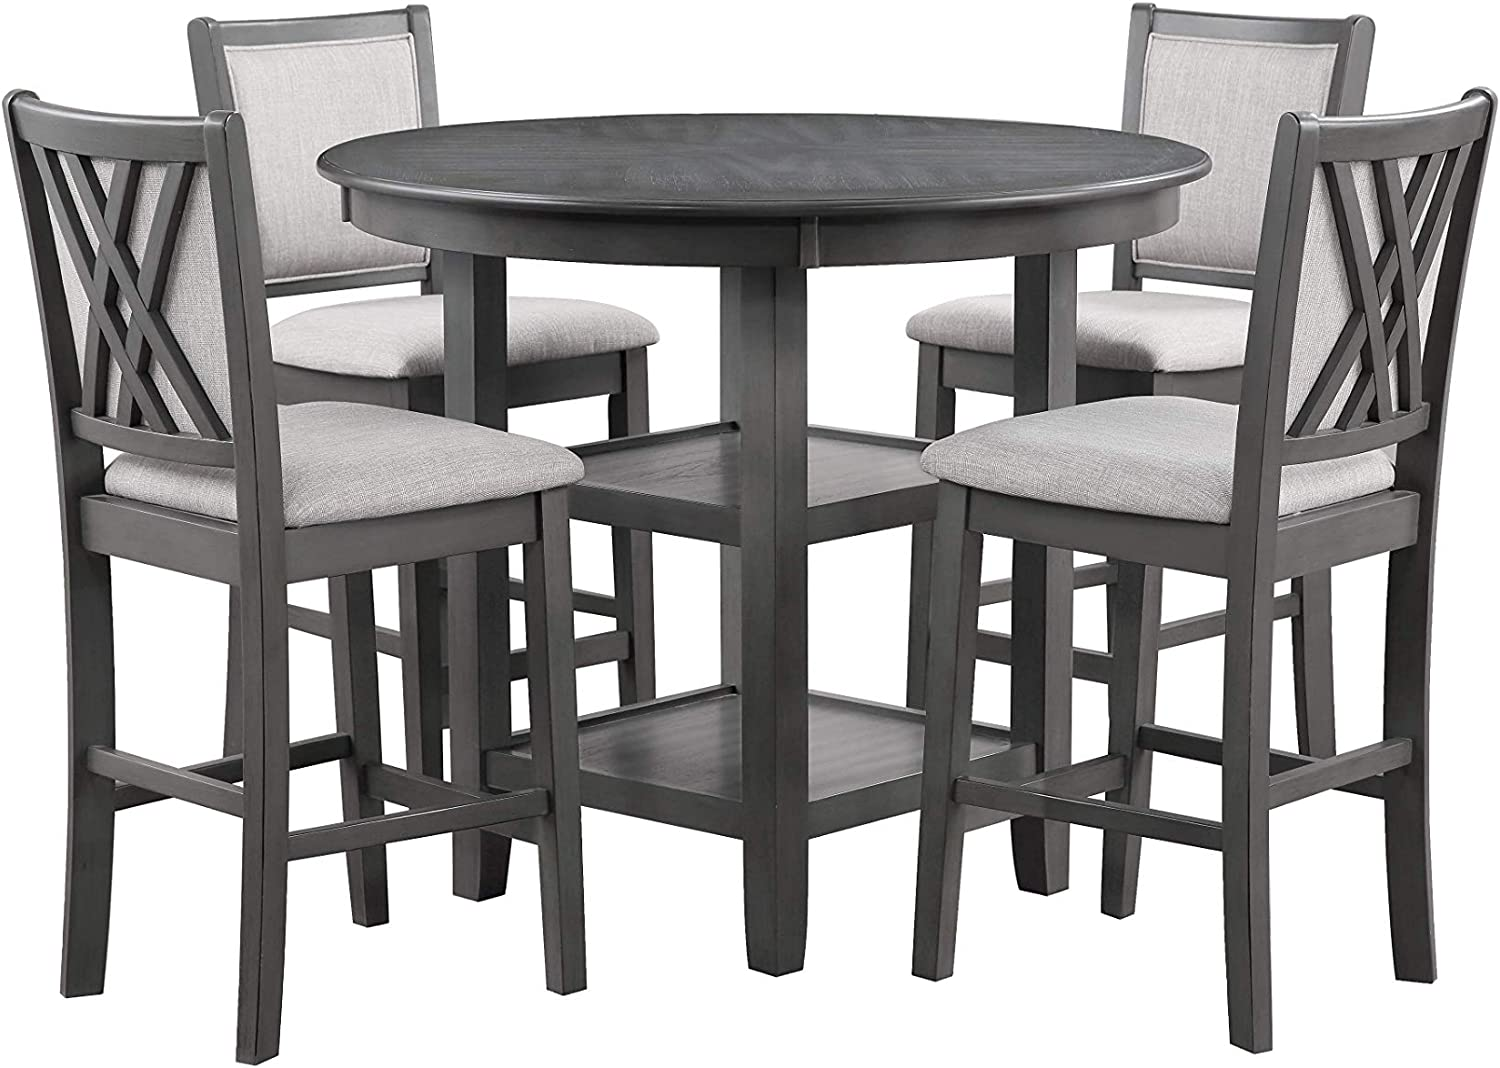 New Classic Furniture Amy 5-Piece Counter Dining Set, Gray